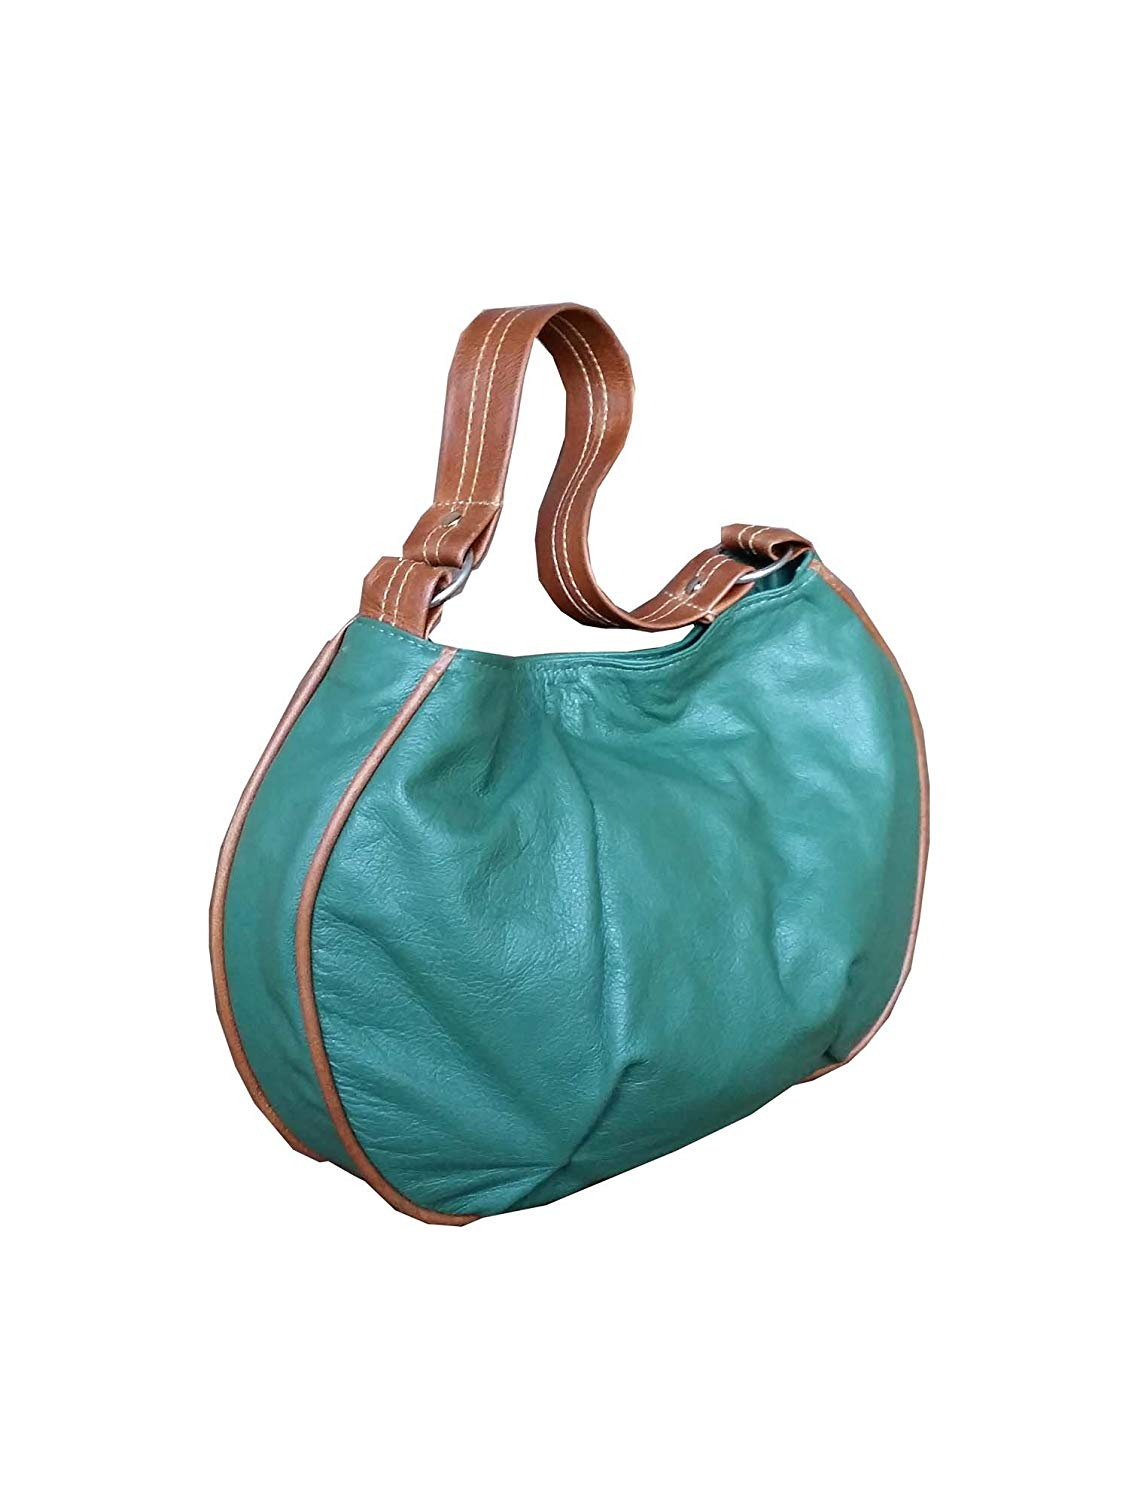 bc3f24b729 Get Quotations · Fgalaze Green Leather Hobo Bag